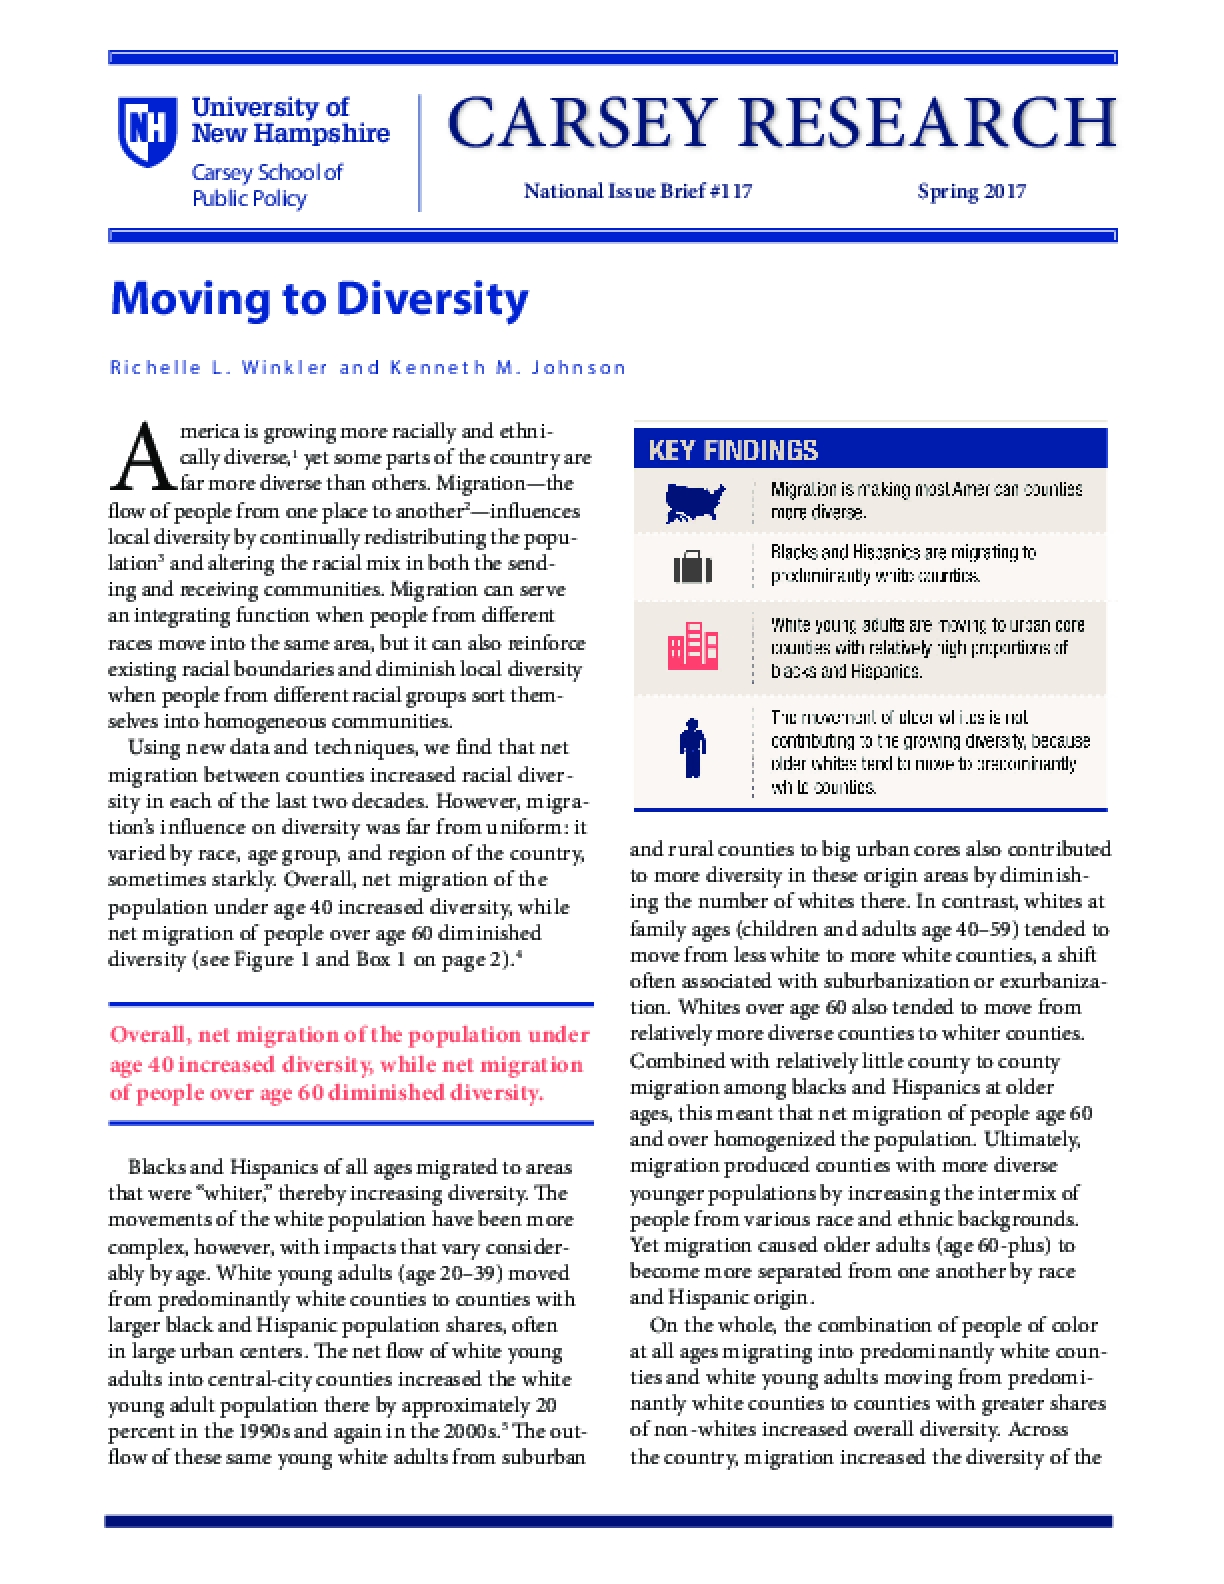 Moving to Diversity